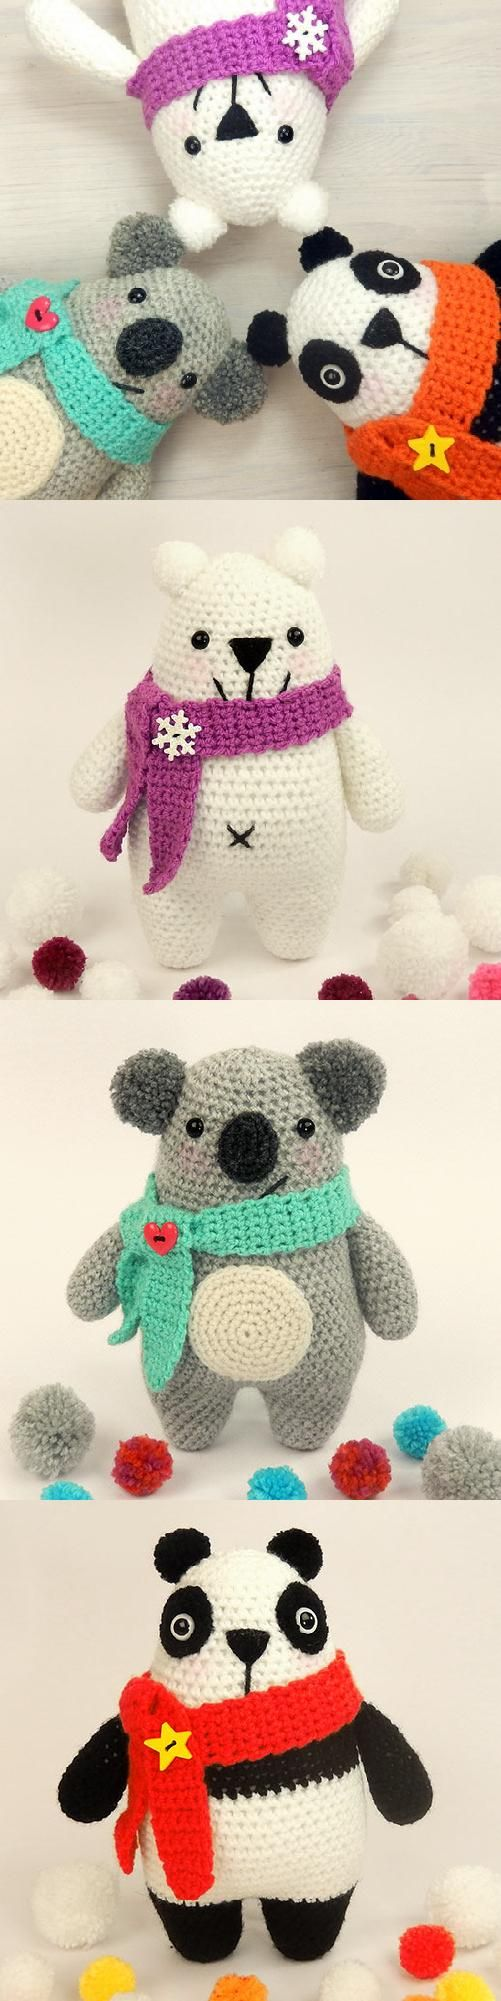 Ning Ning, Norris and Nook amigurumi pattern by Janine Holmes at Moji-Moji…